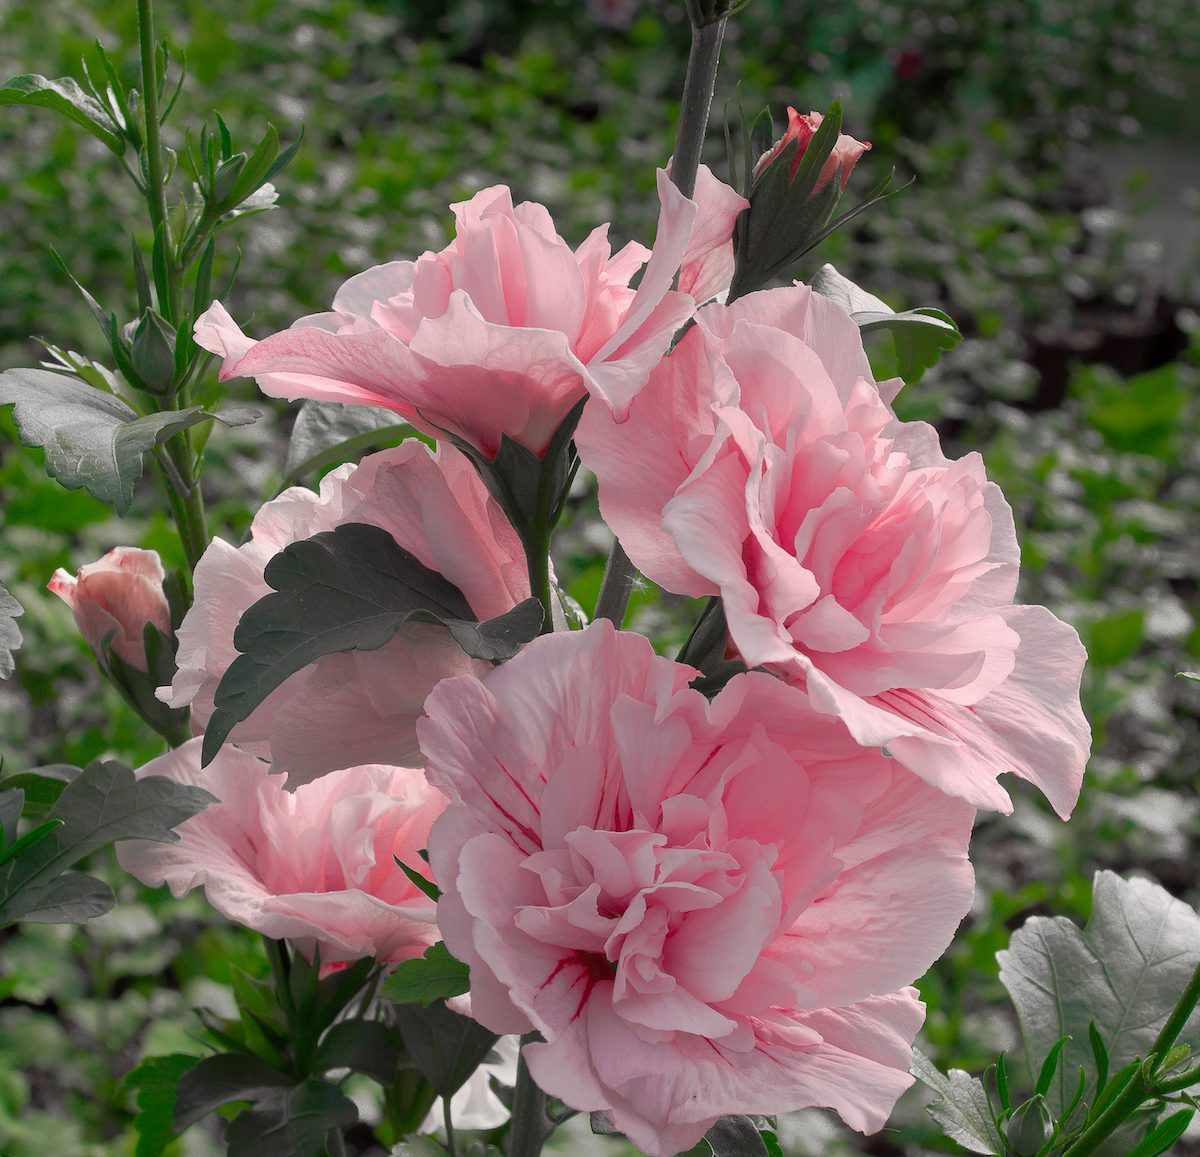 A cluster of Pink Chiffon rose of Sharon blooms.